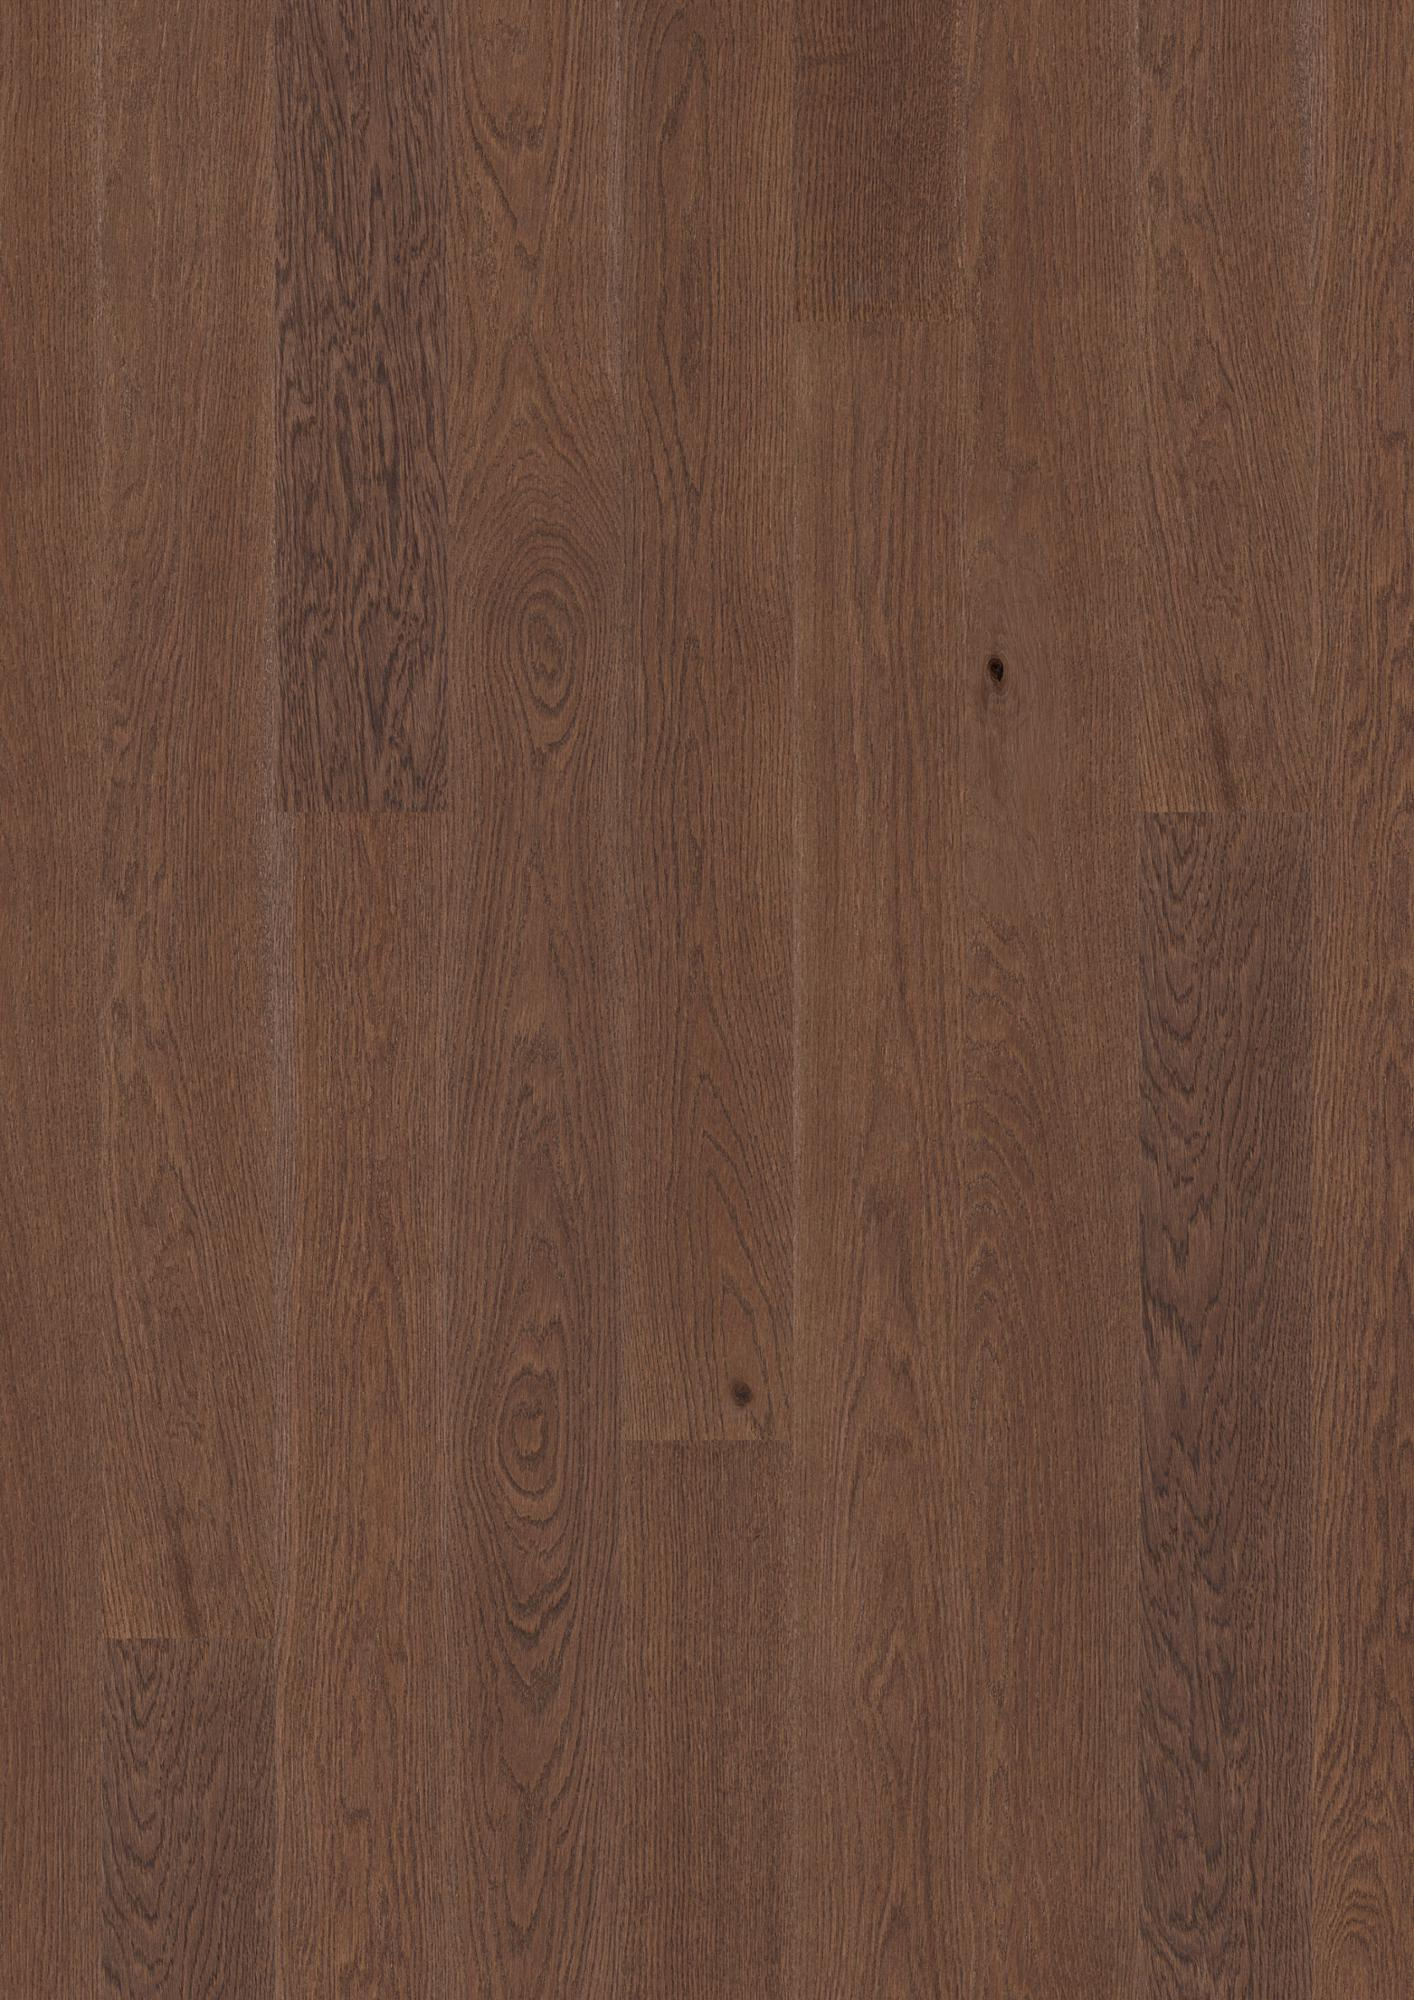 Oak Oregon, Live Matt lacquer, Plank 138, 14x138x2200mm